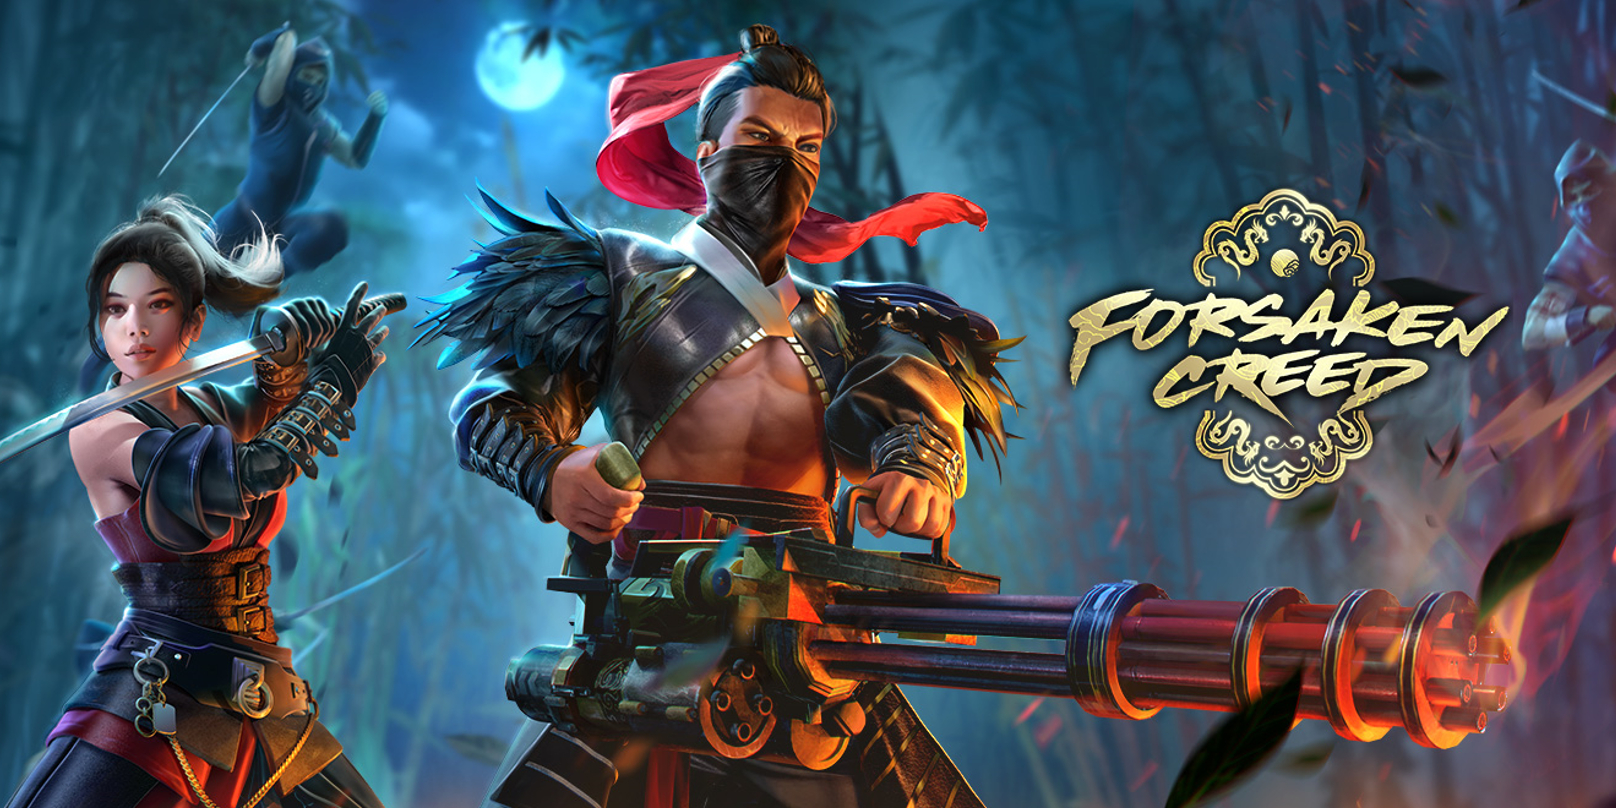 Garena Free Fire's latest Elite Pass, Forsaken Creed, takes us to a world of mutants and samurai